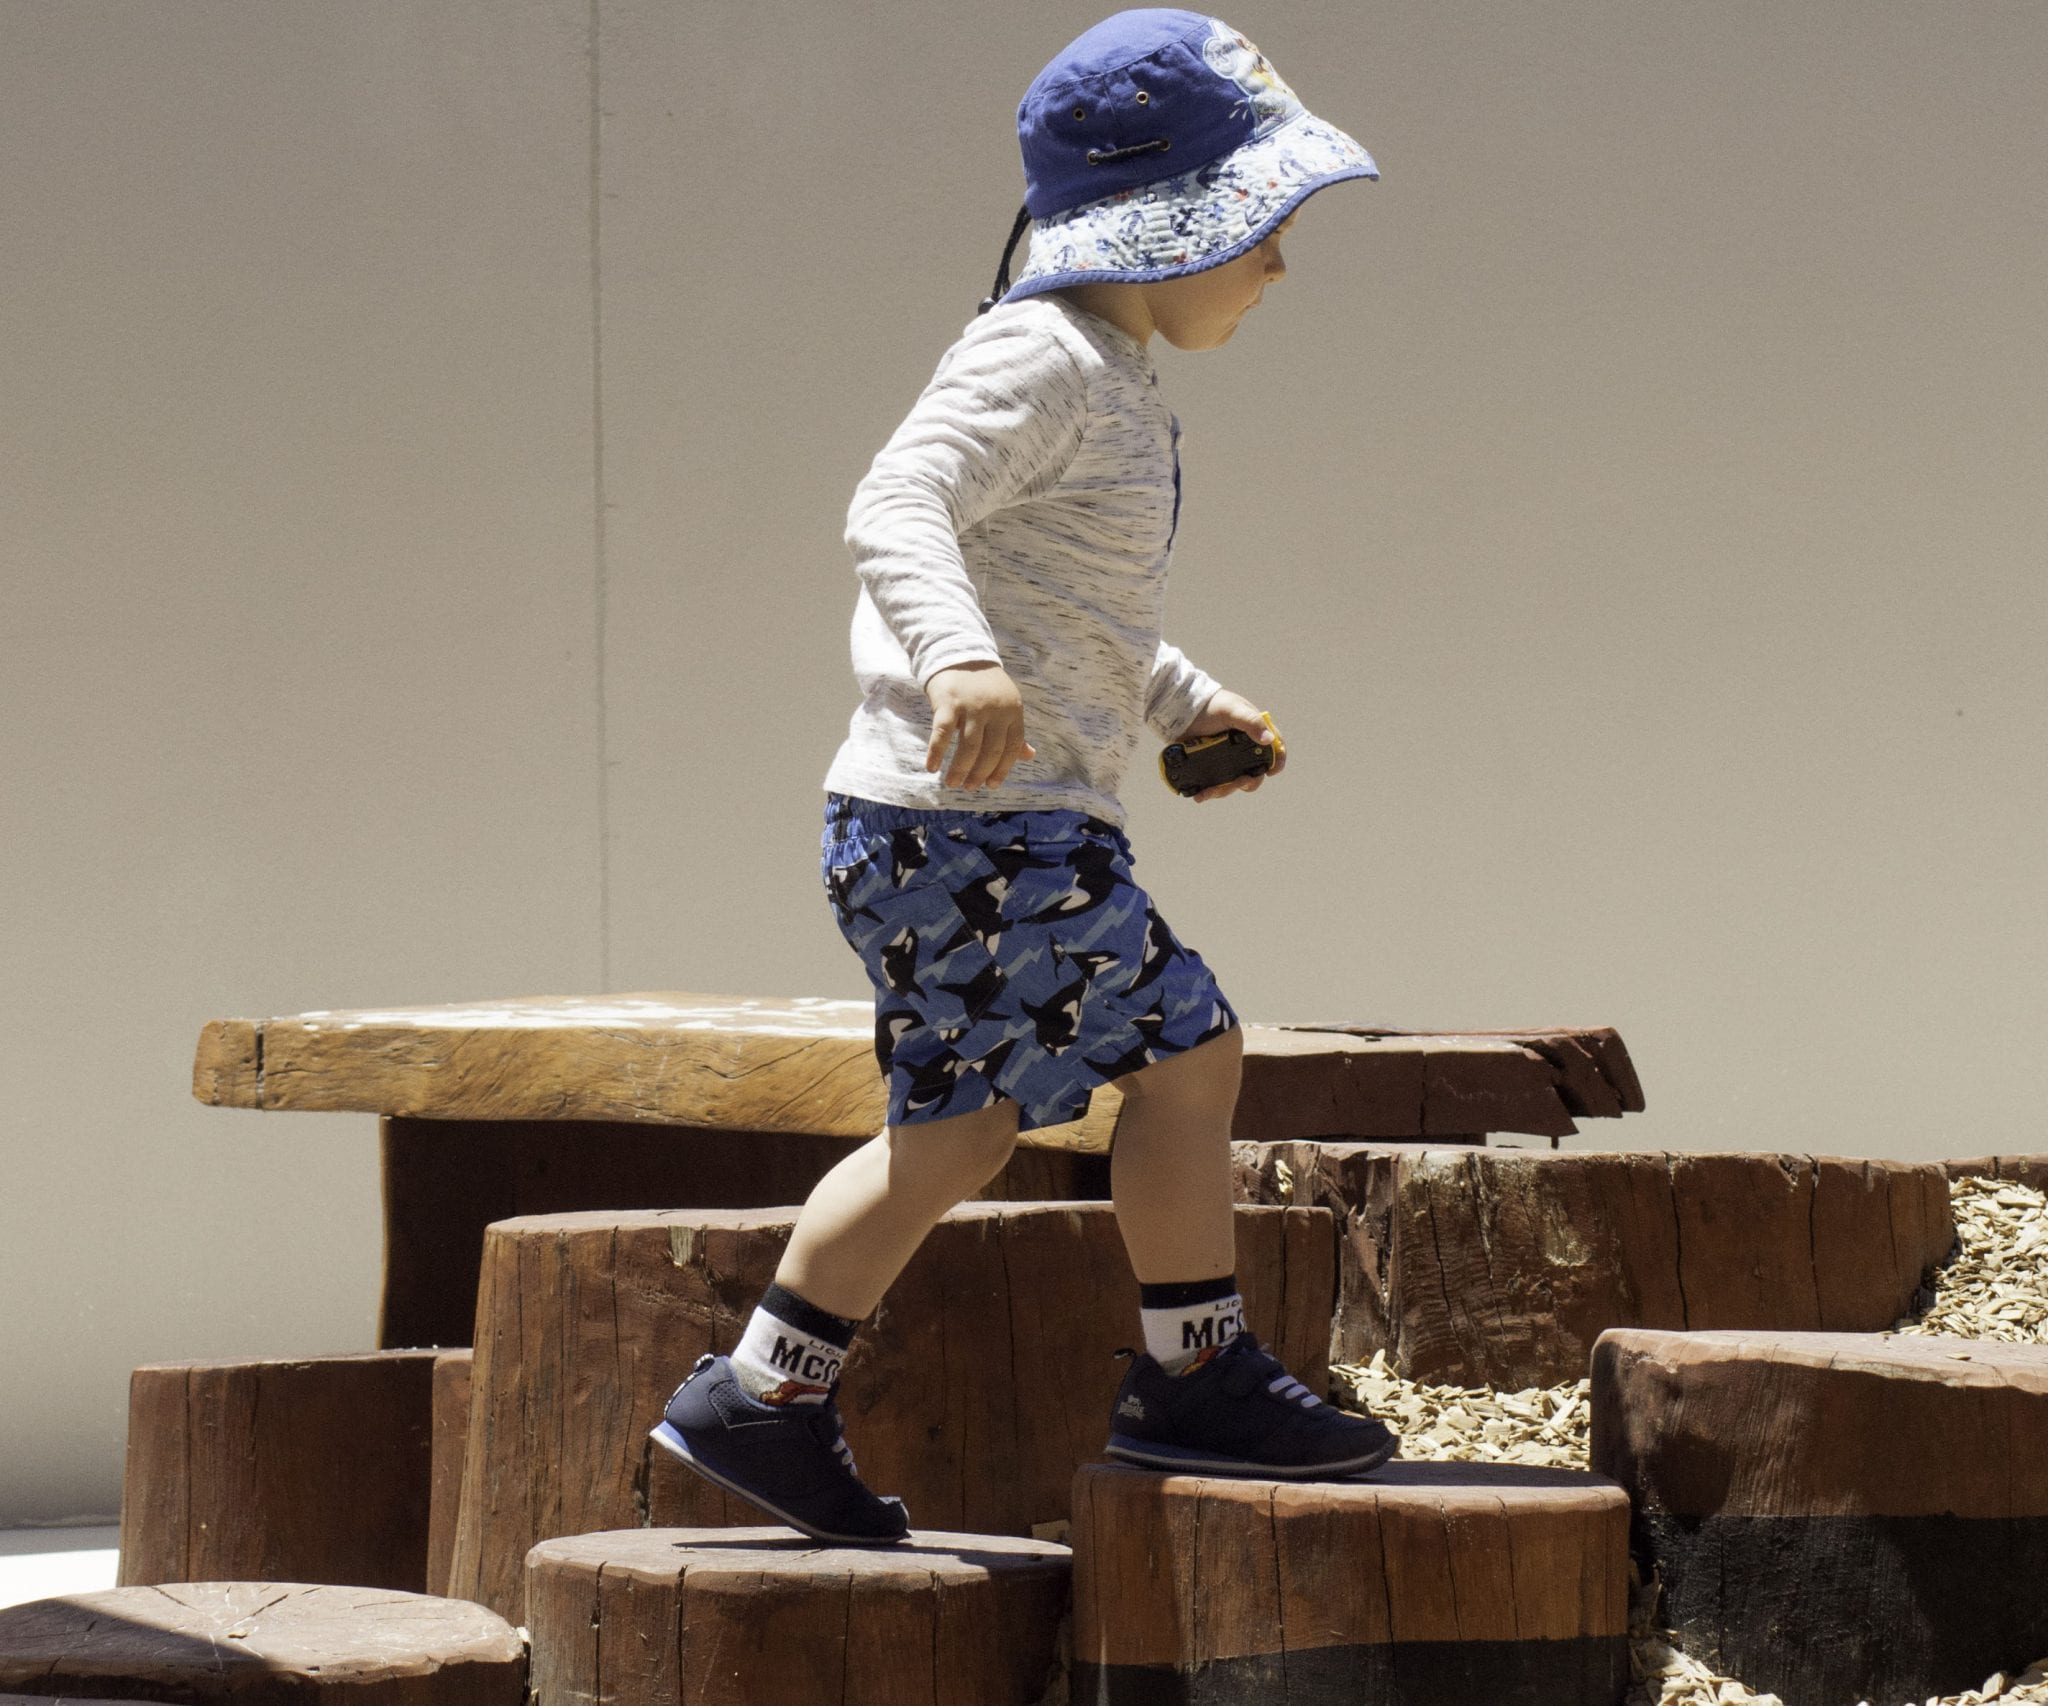 young boy climbing wooden steps outdoors